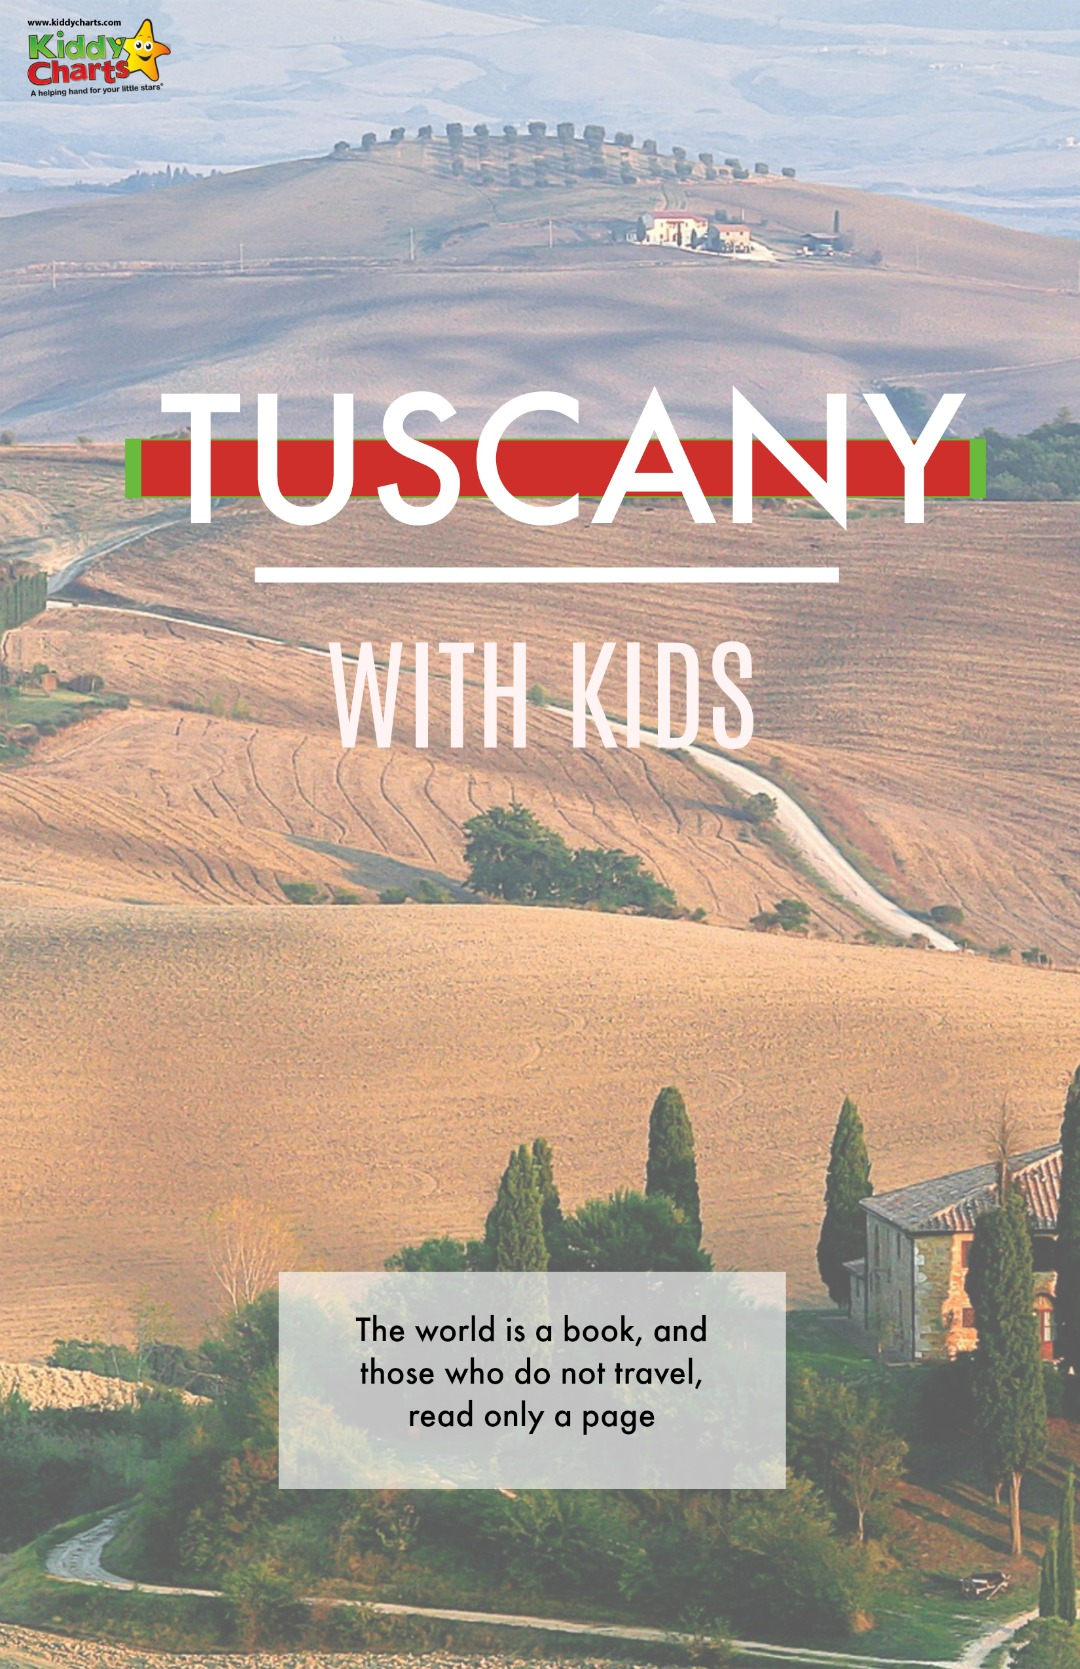 Are you looking to go to Tuscany with kids - we've got FIVE great ideas for what you can do! #familytravel #tuscany #kidstravel